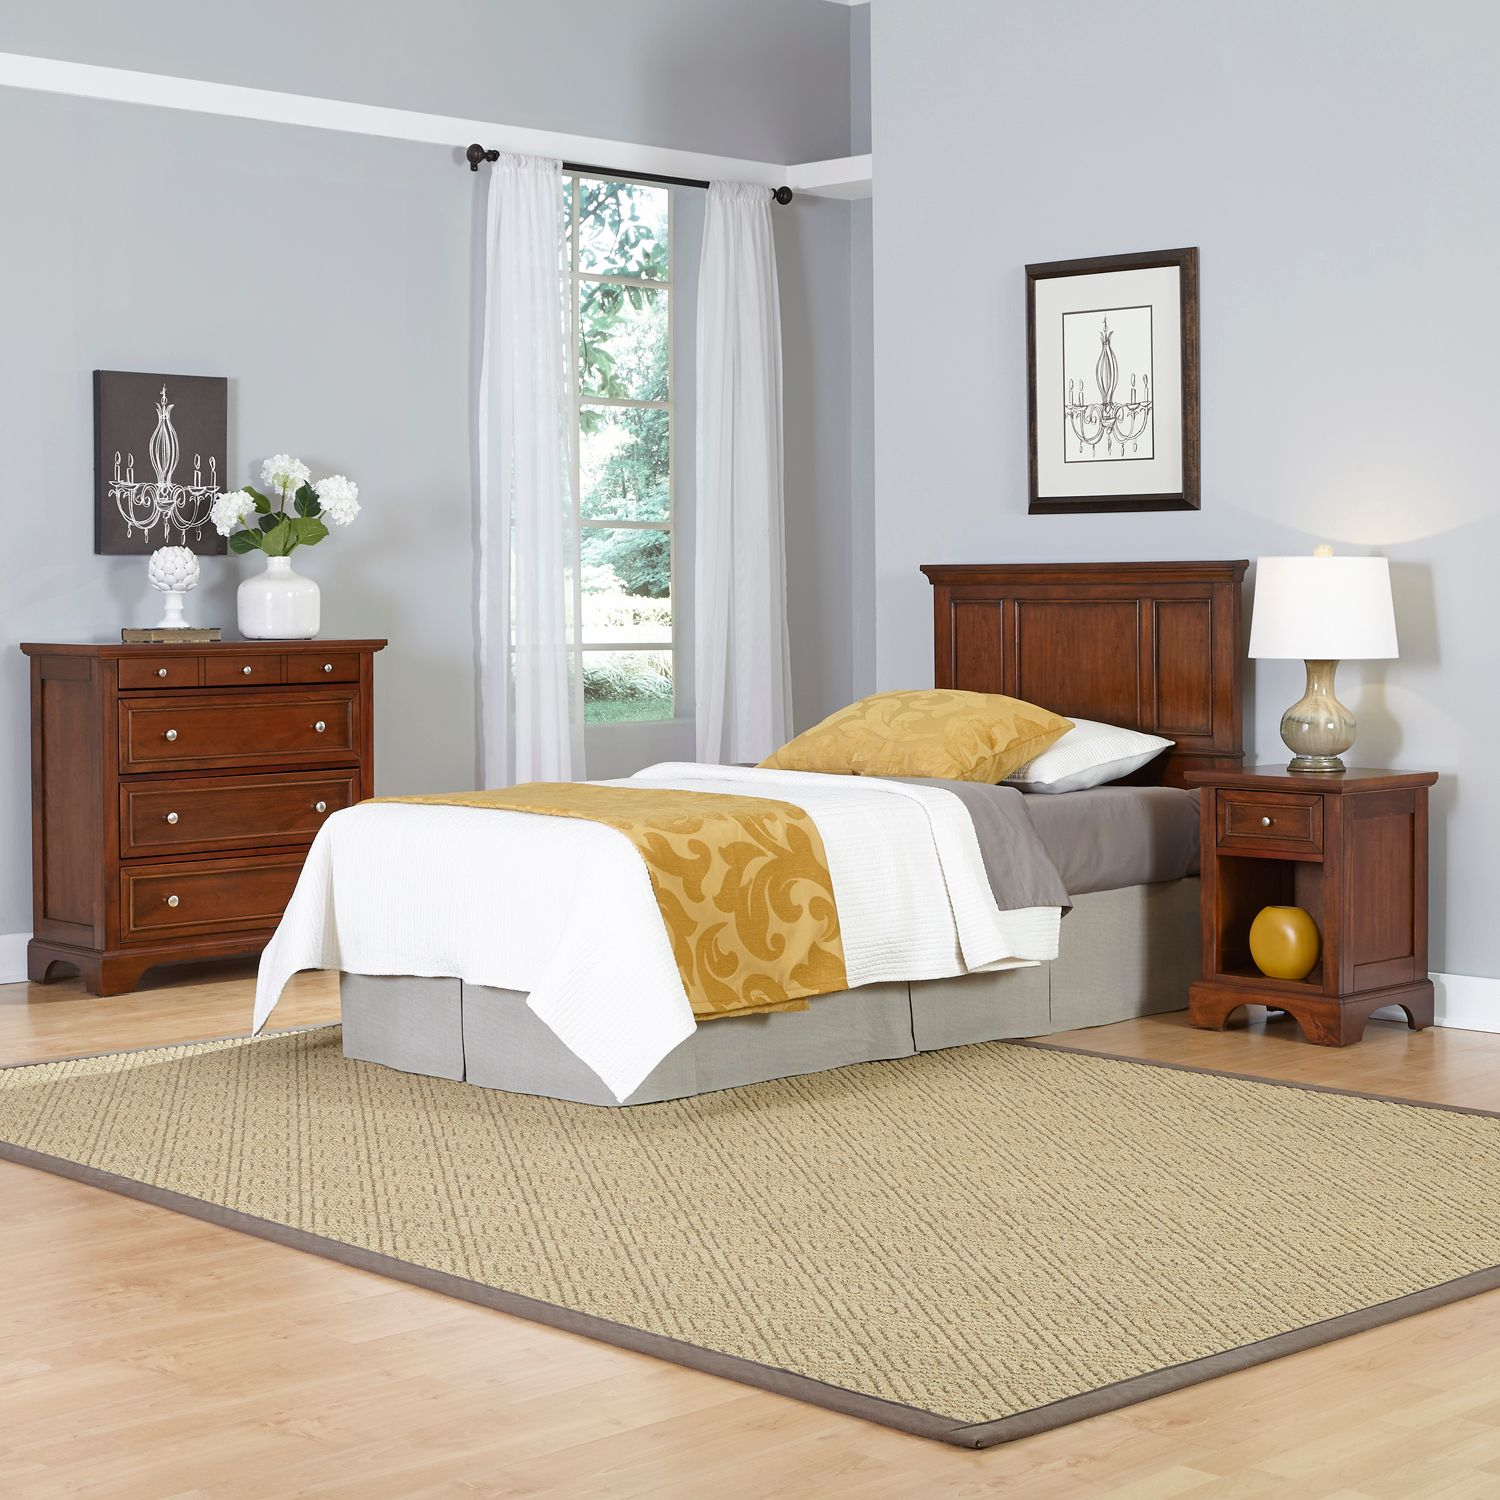 Cool Home Styles piece Chesapeake Twin Bedroom Set